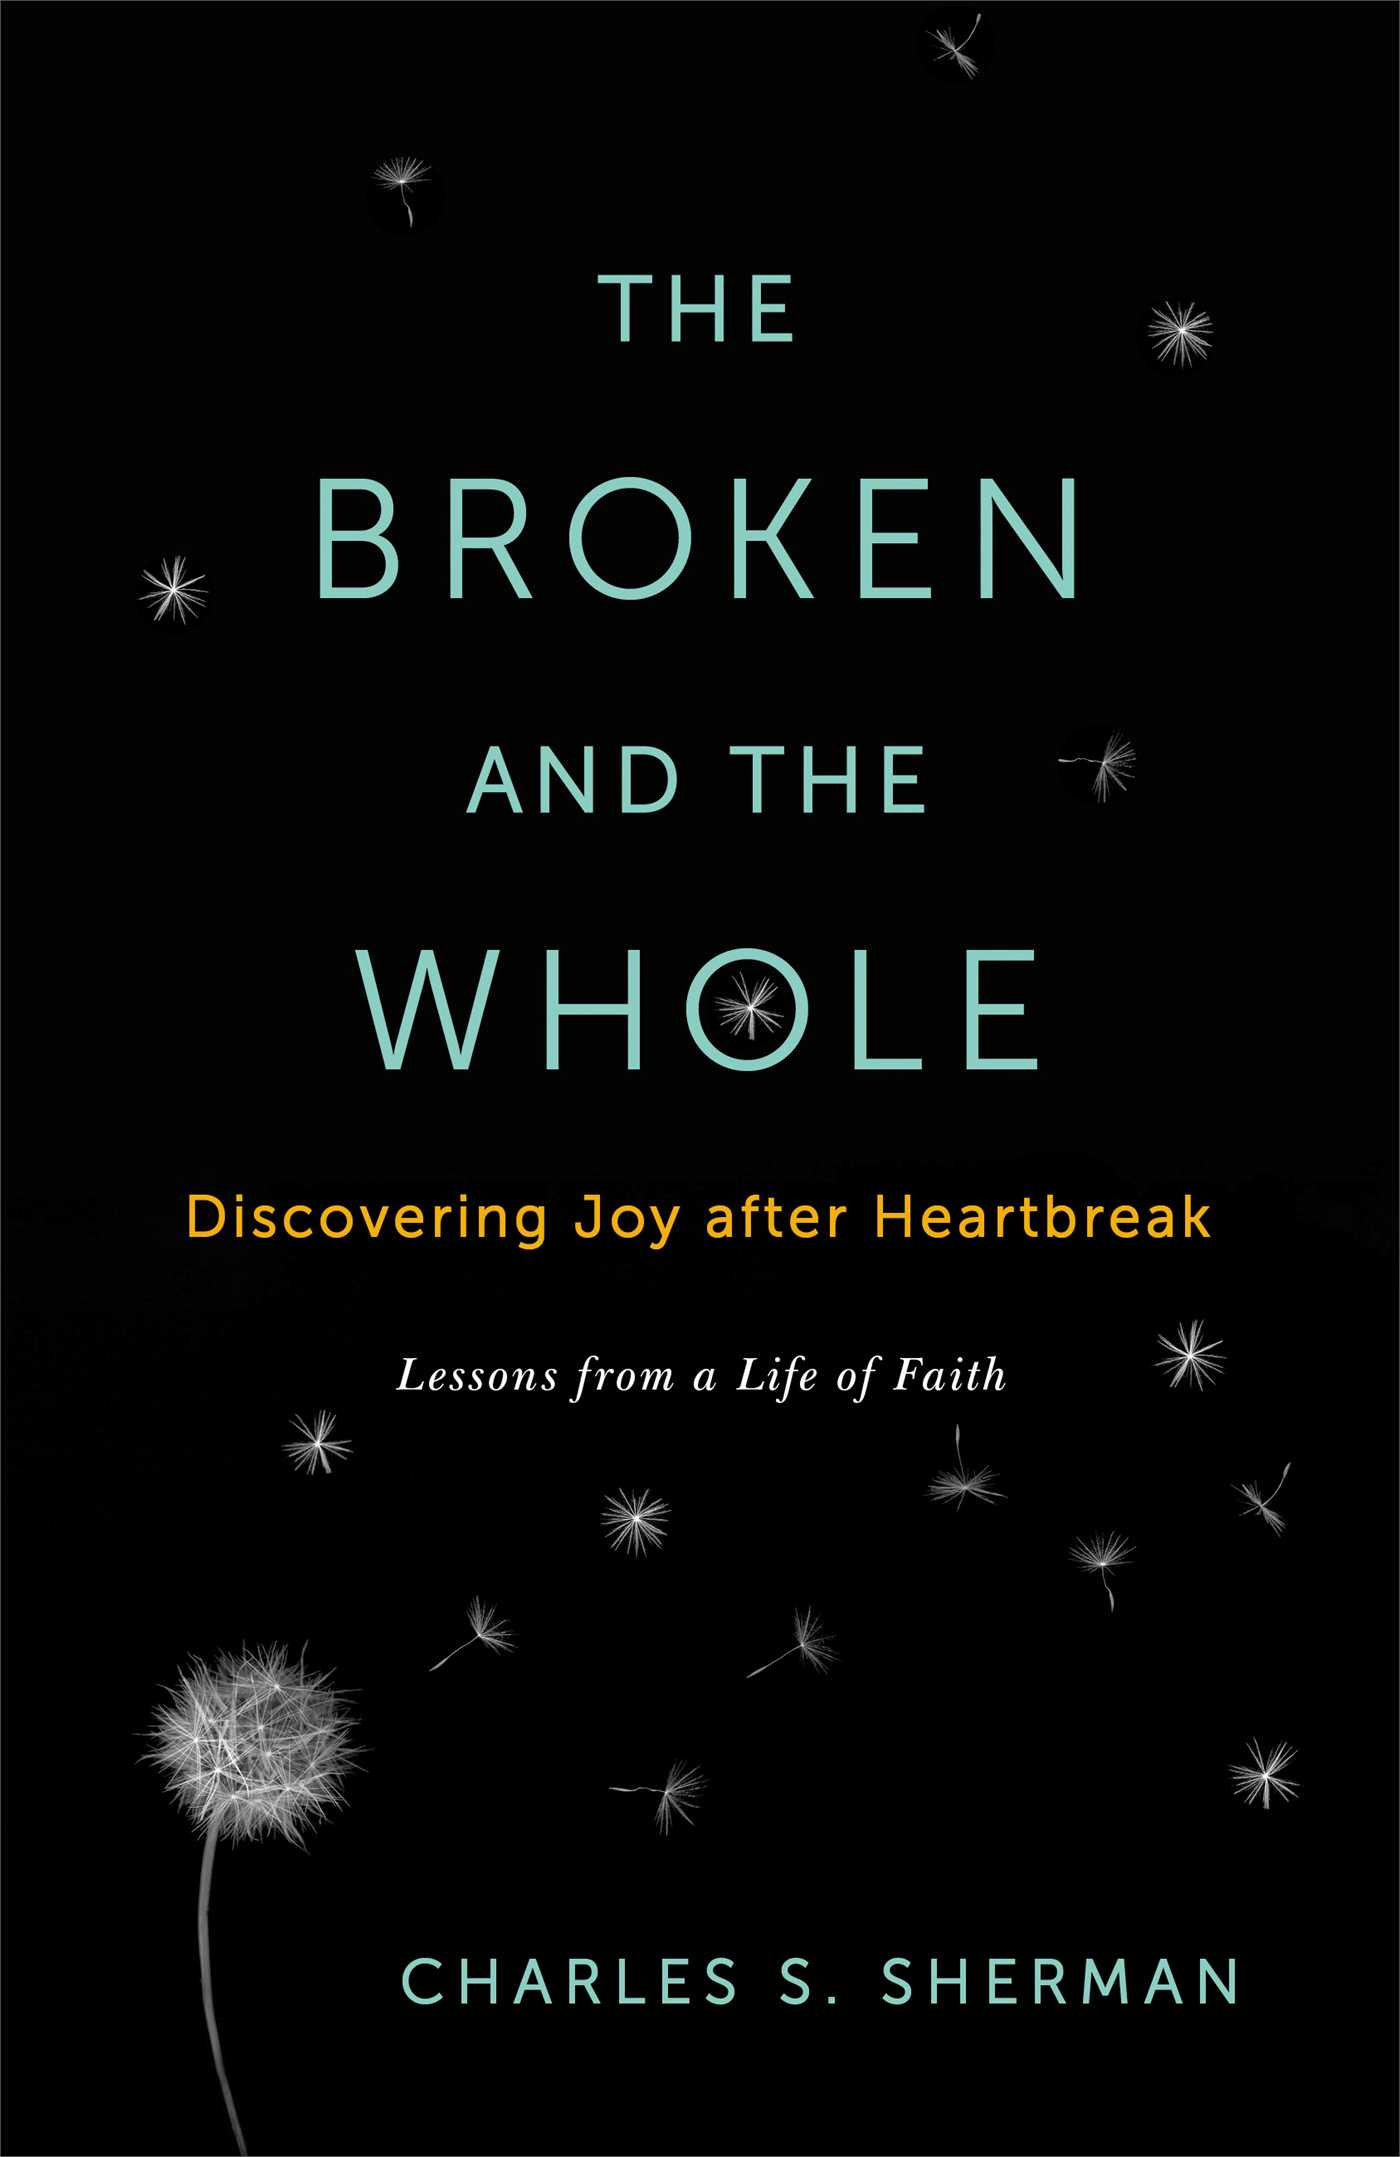 Broken-and-the-whole-9781451656244_hr